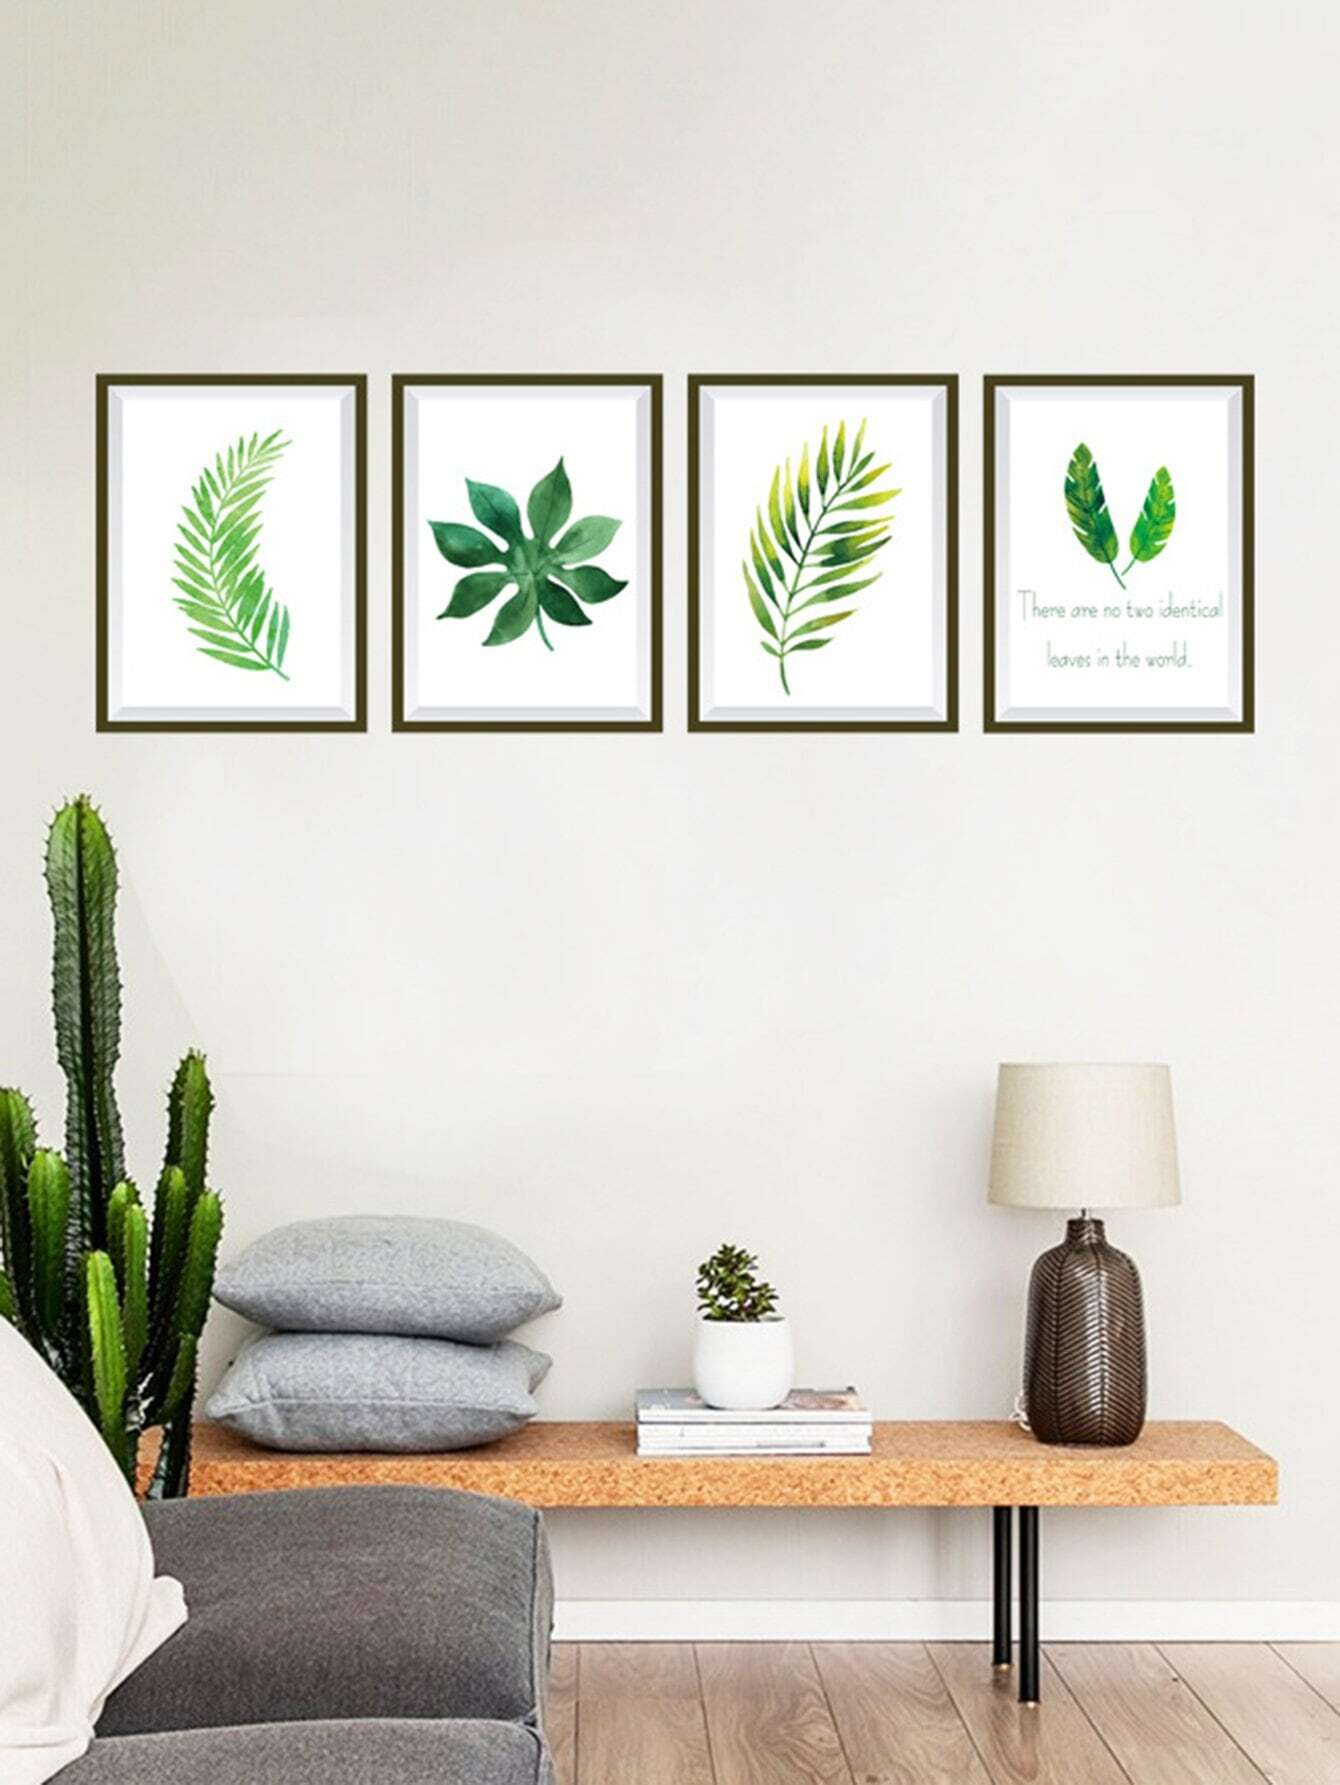 4 Type Tropical Leaves Wall Sticker tropical leaves wall sticker